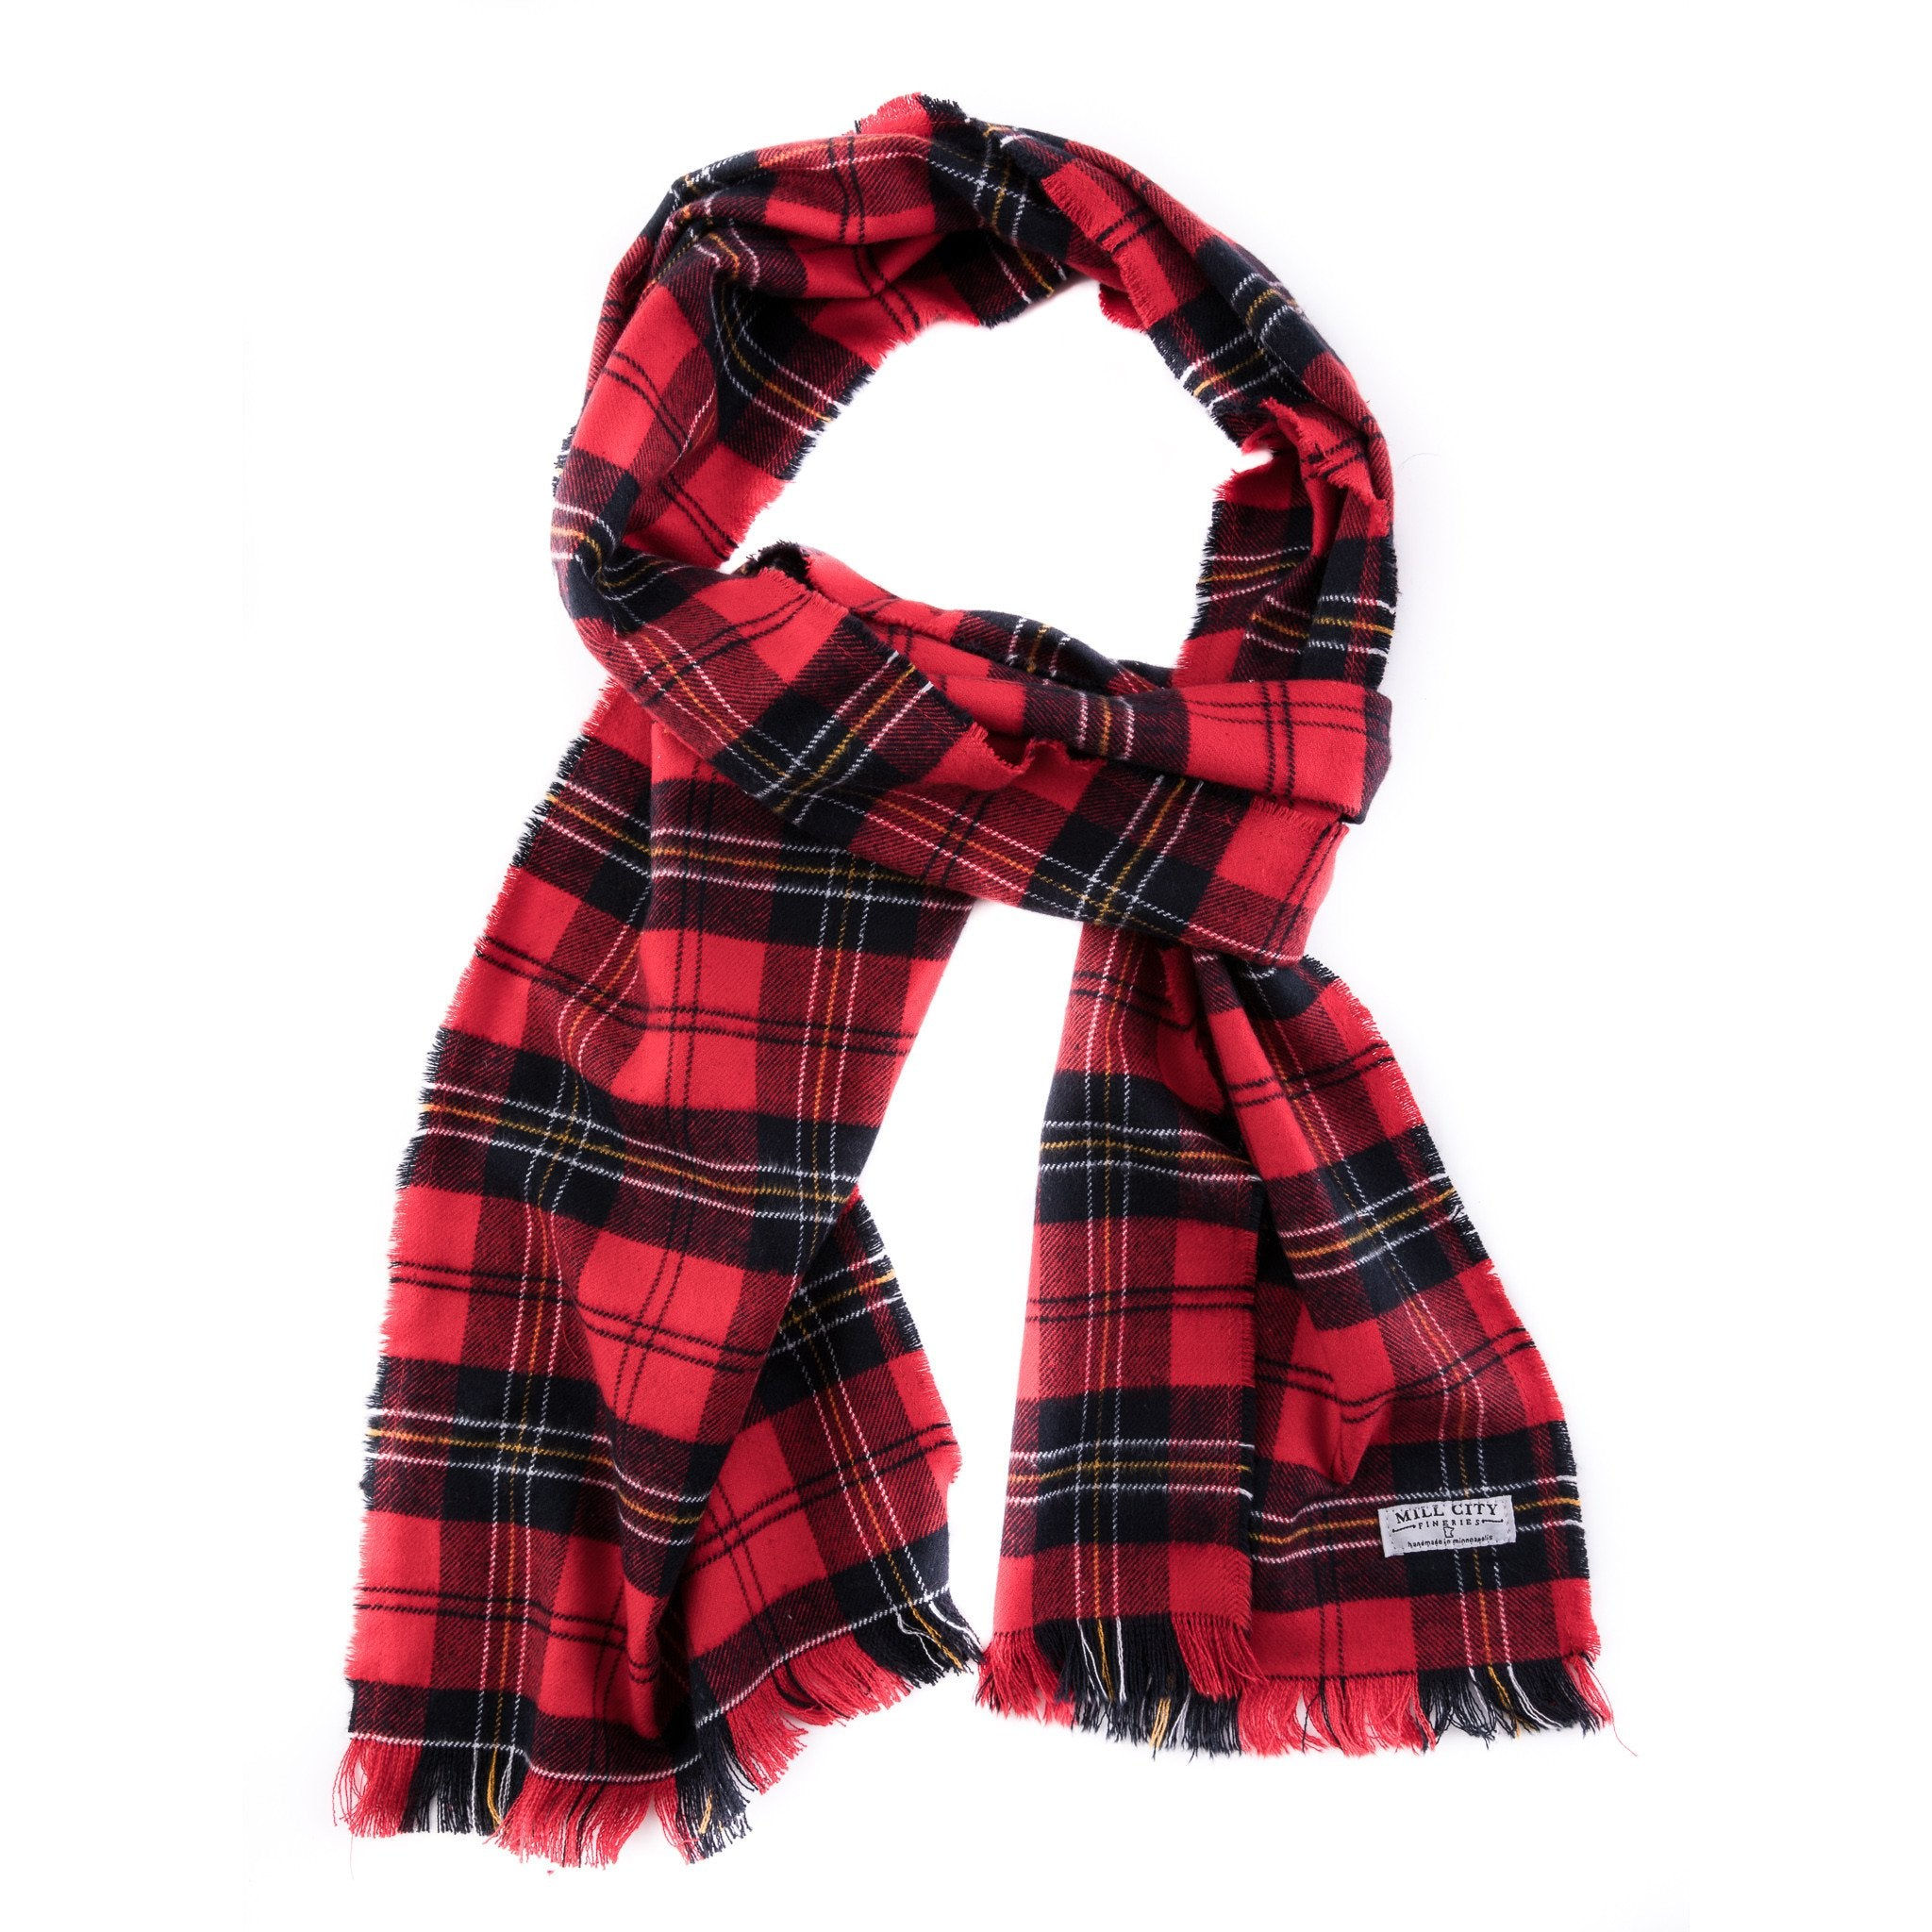 Mill City Fineries Burnett Tartan Flannel Scarf